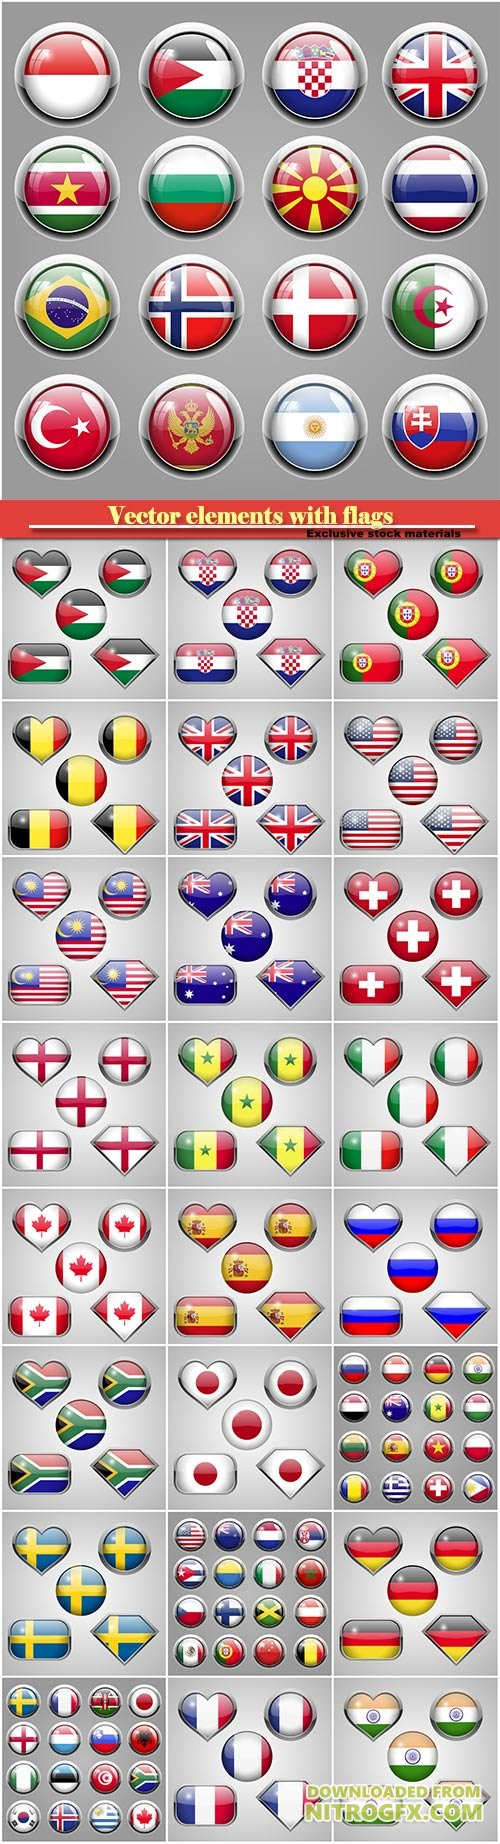 Vector elements flags of different countries of the world